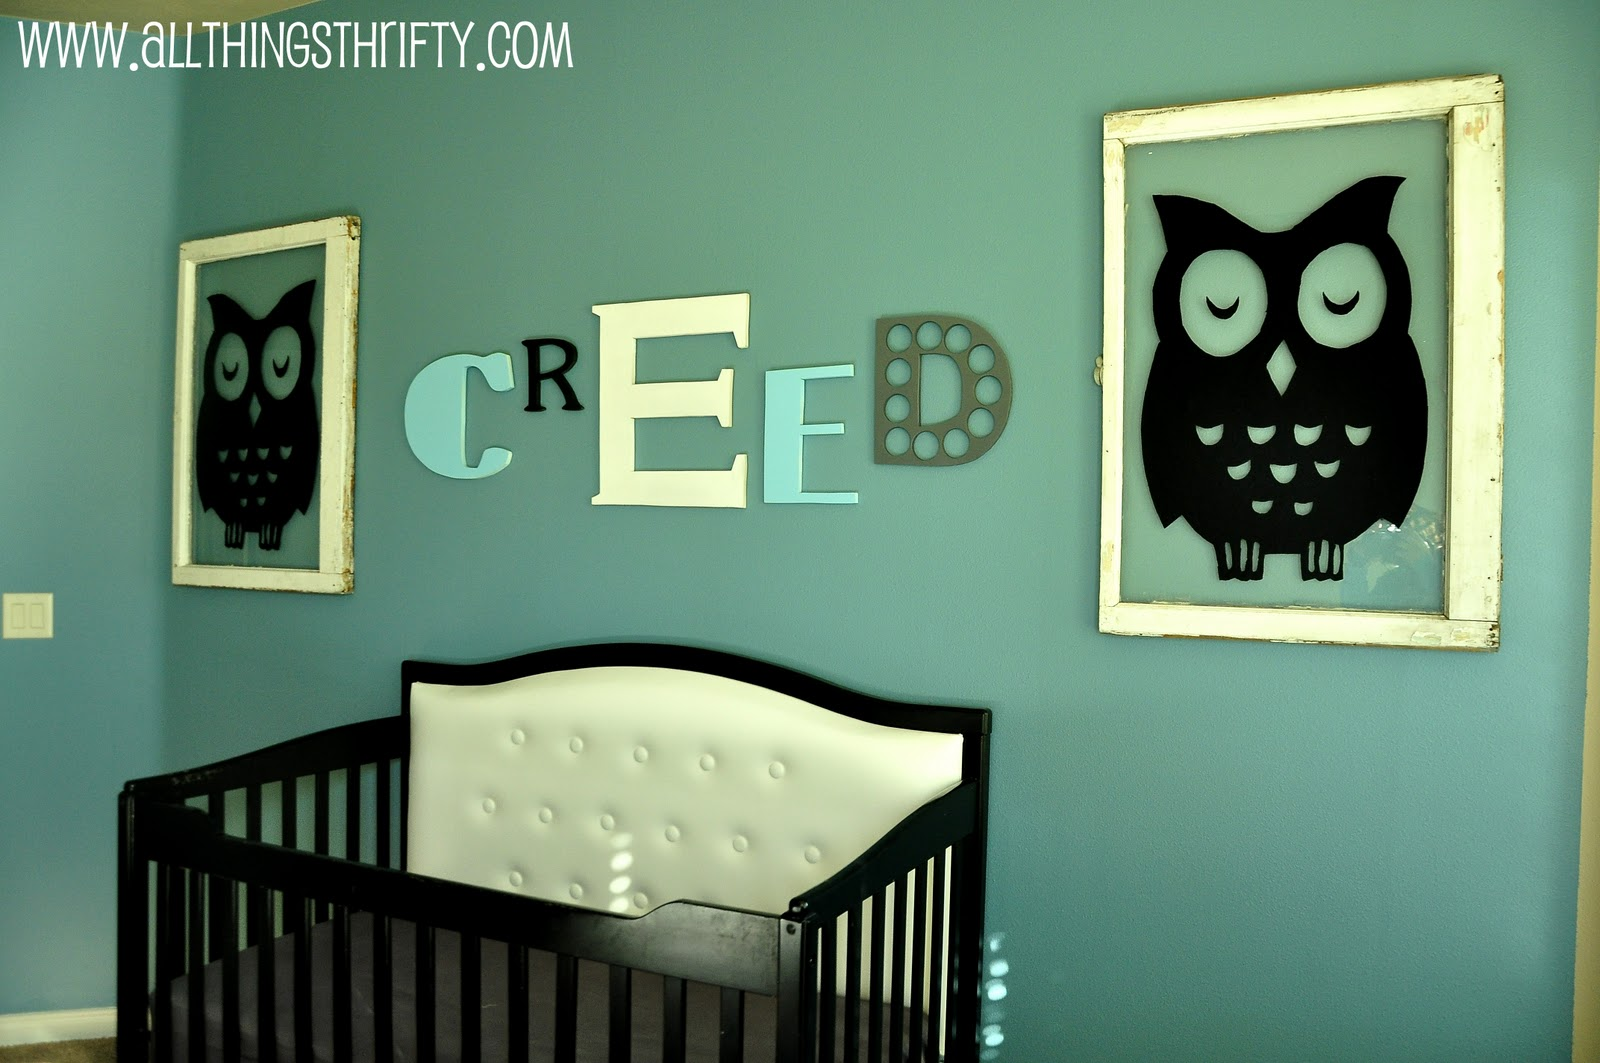 Green baby boy room decor - Green Baby Boy Room Decor 12